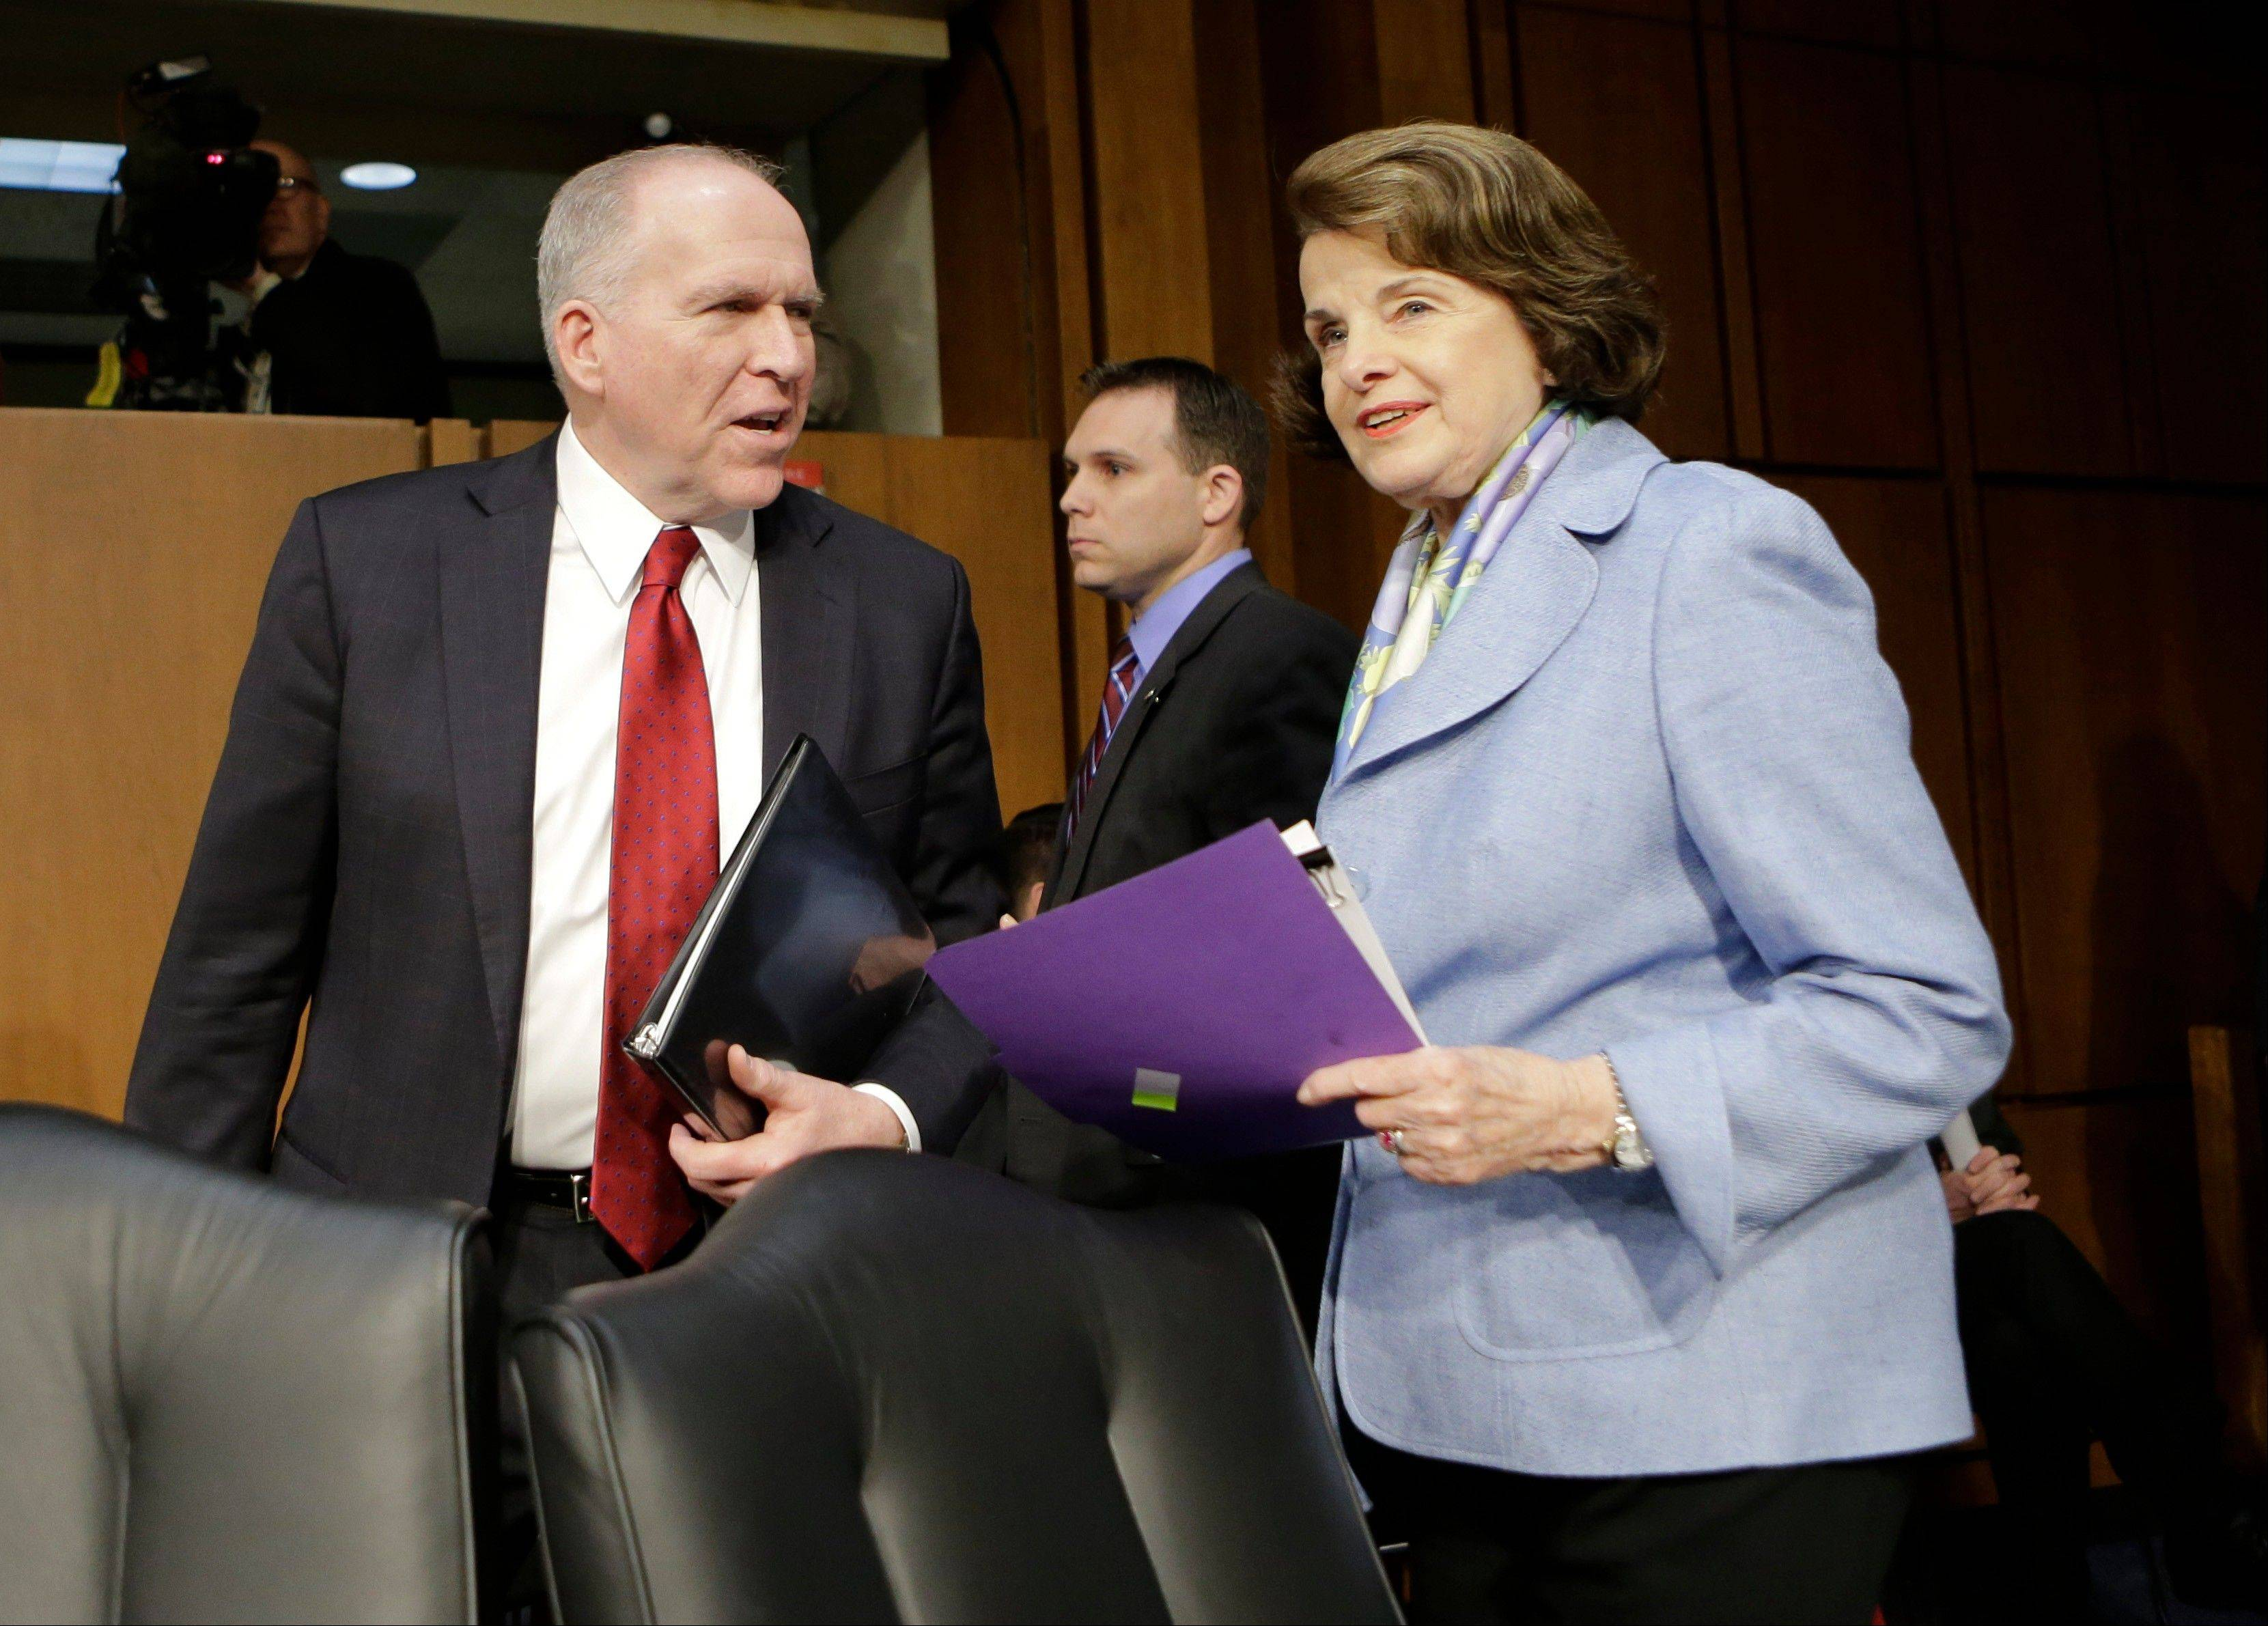 Associated Press/Feb. 7, 2013 Senate Intelligence Committee Chair Sen. Dianne Feinstein, D-Calif., right, welcomes CIA Director nominee John Brennan on Capitol Hill in Washington.